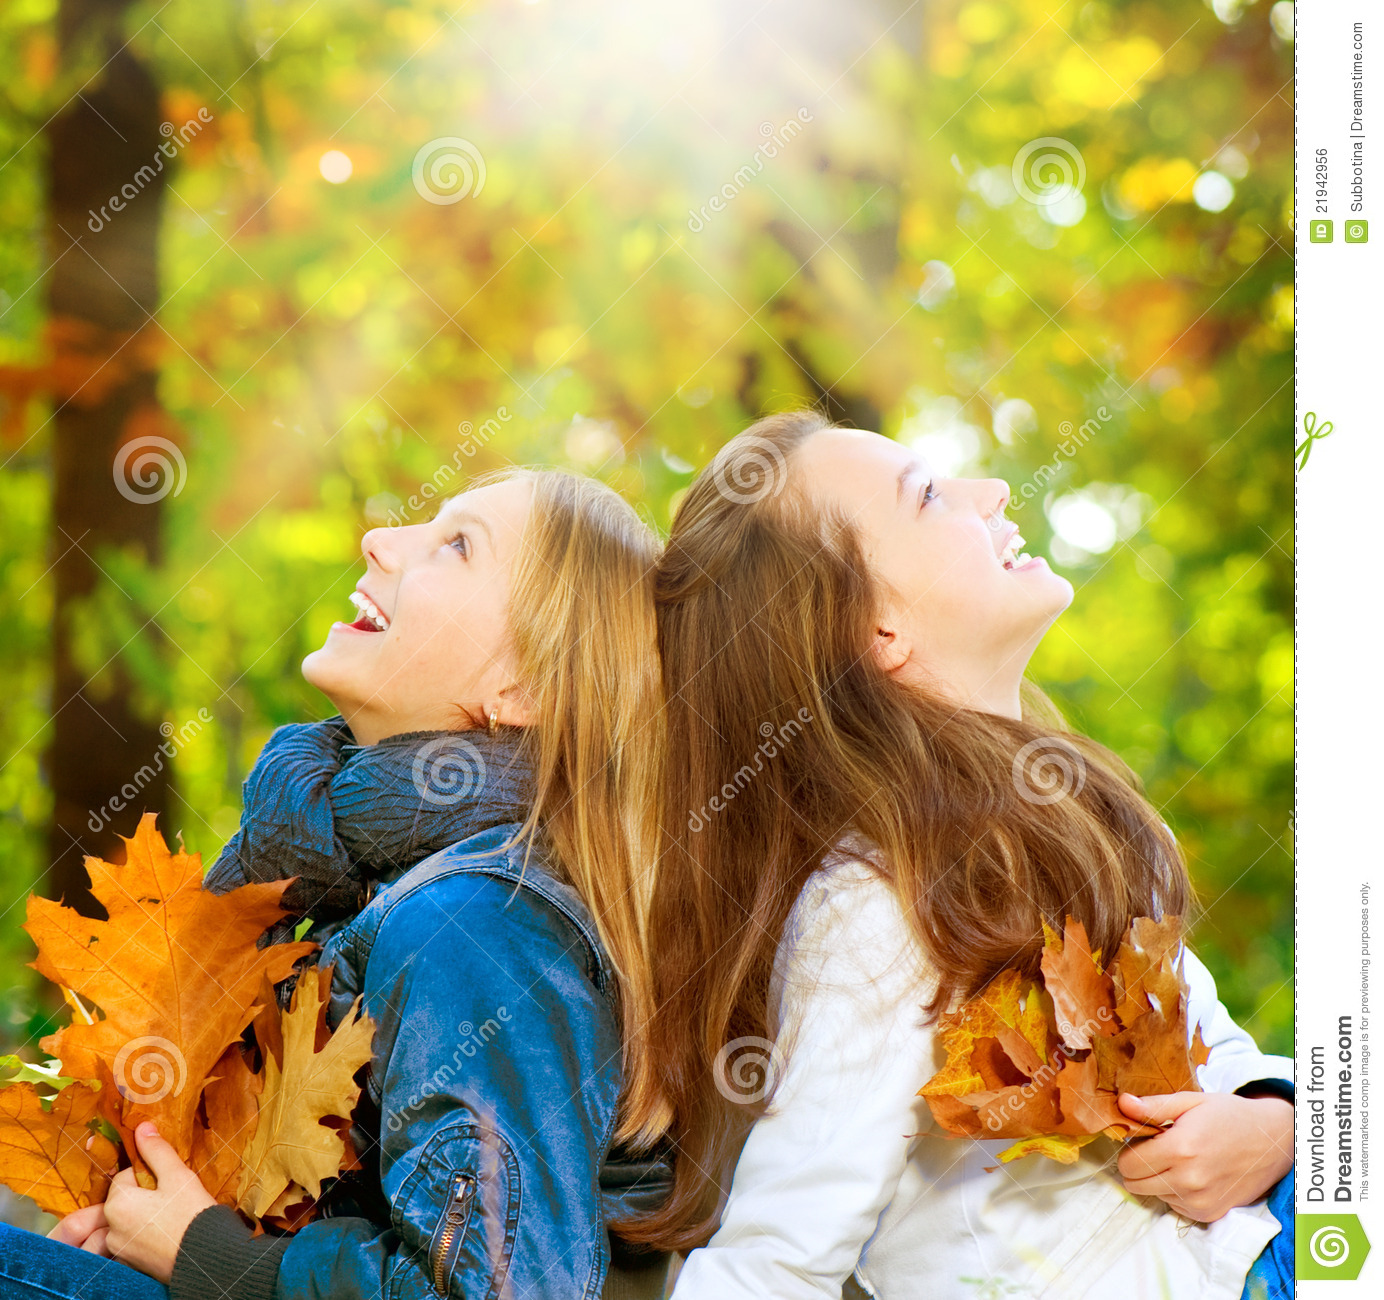 Teenage Girls in Autumn Park